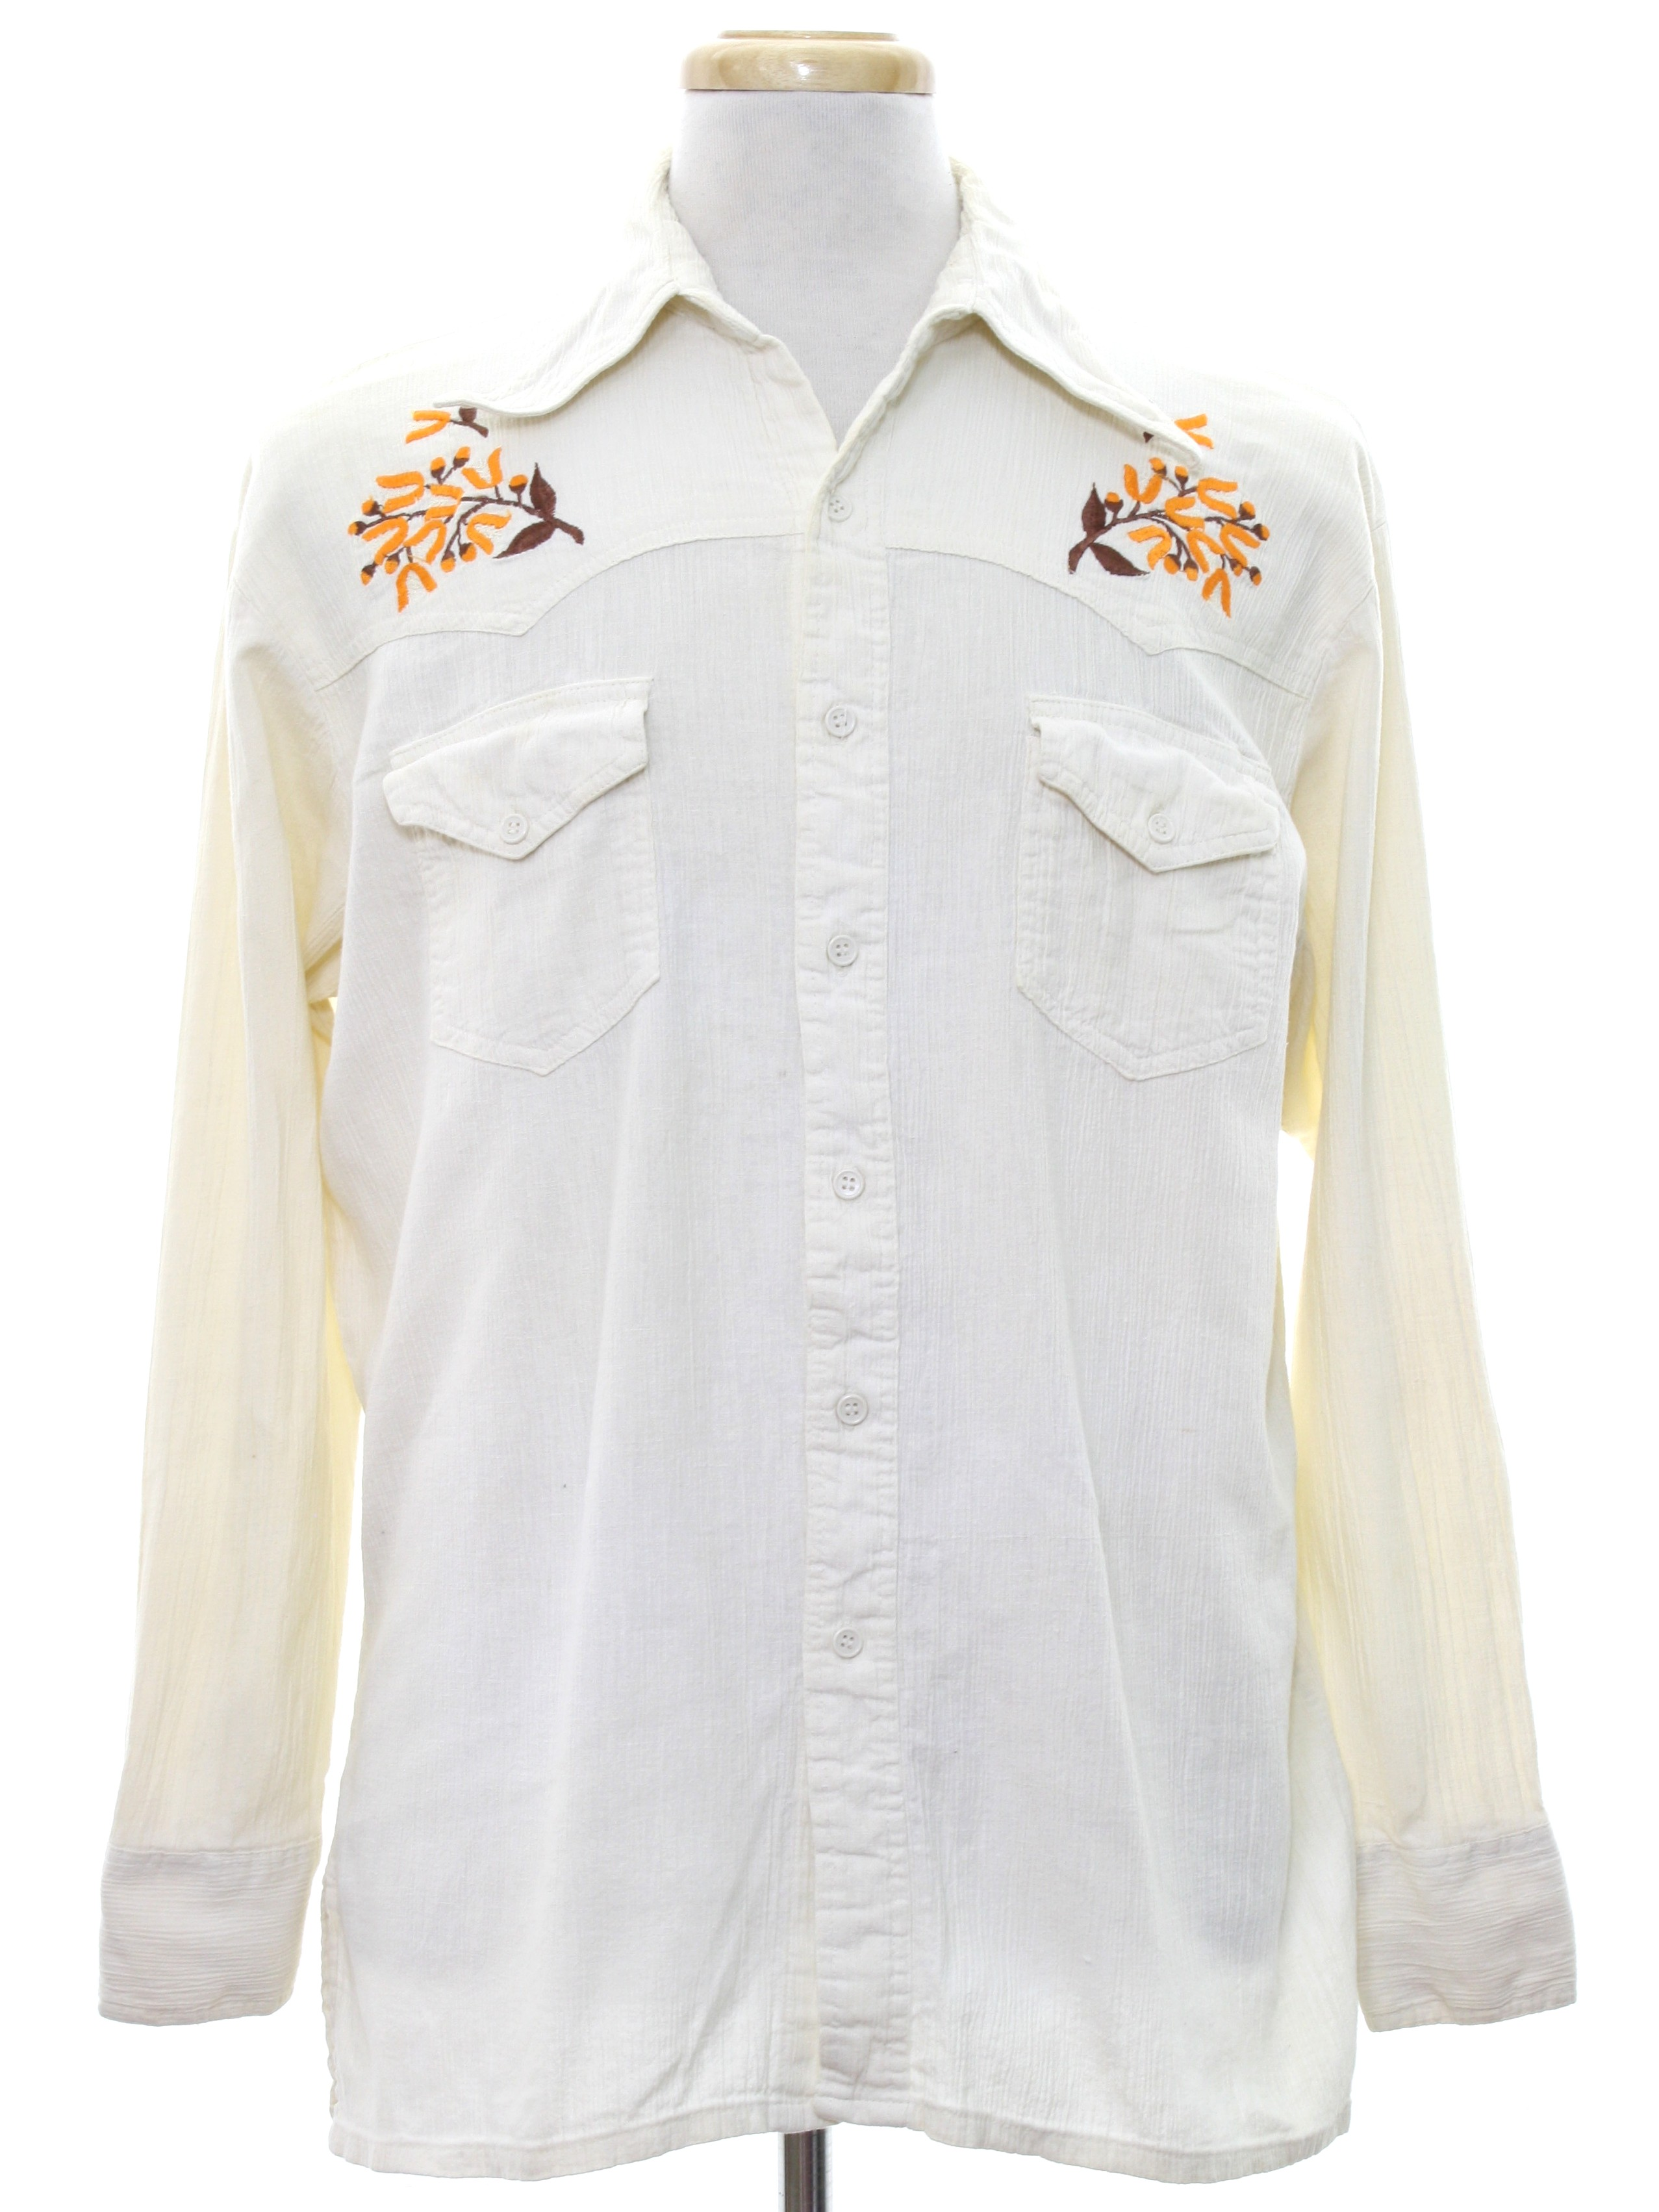 Vintage 1970 39 s western shirt late 70s or early 80s kmart for Kmart button up shirts